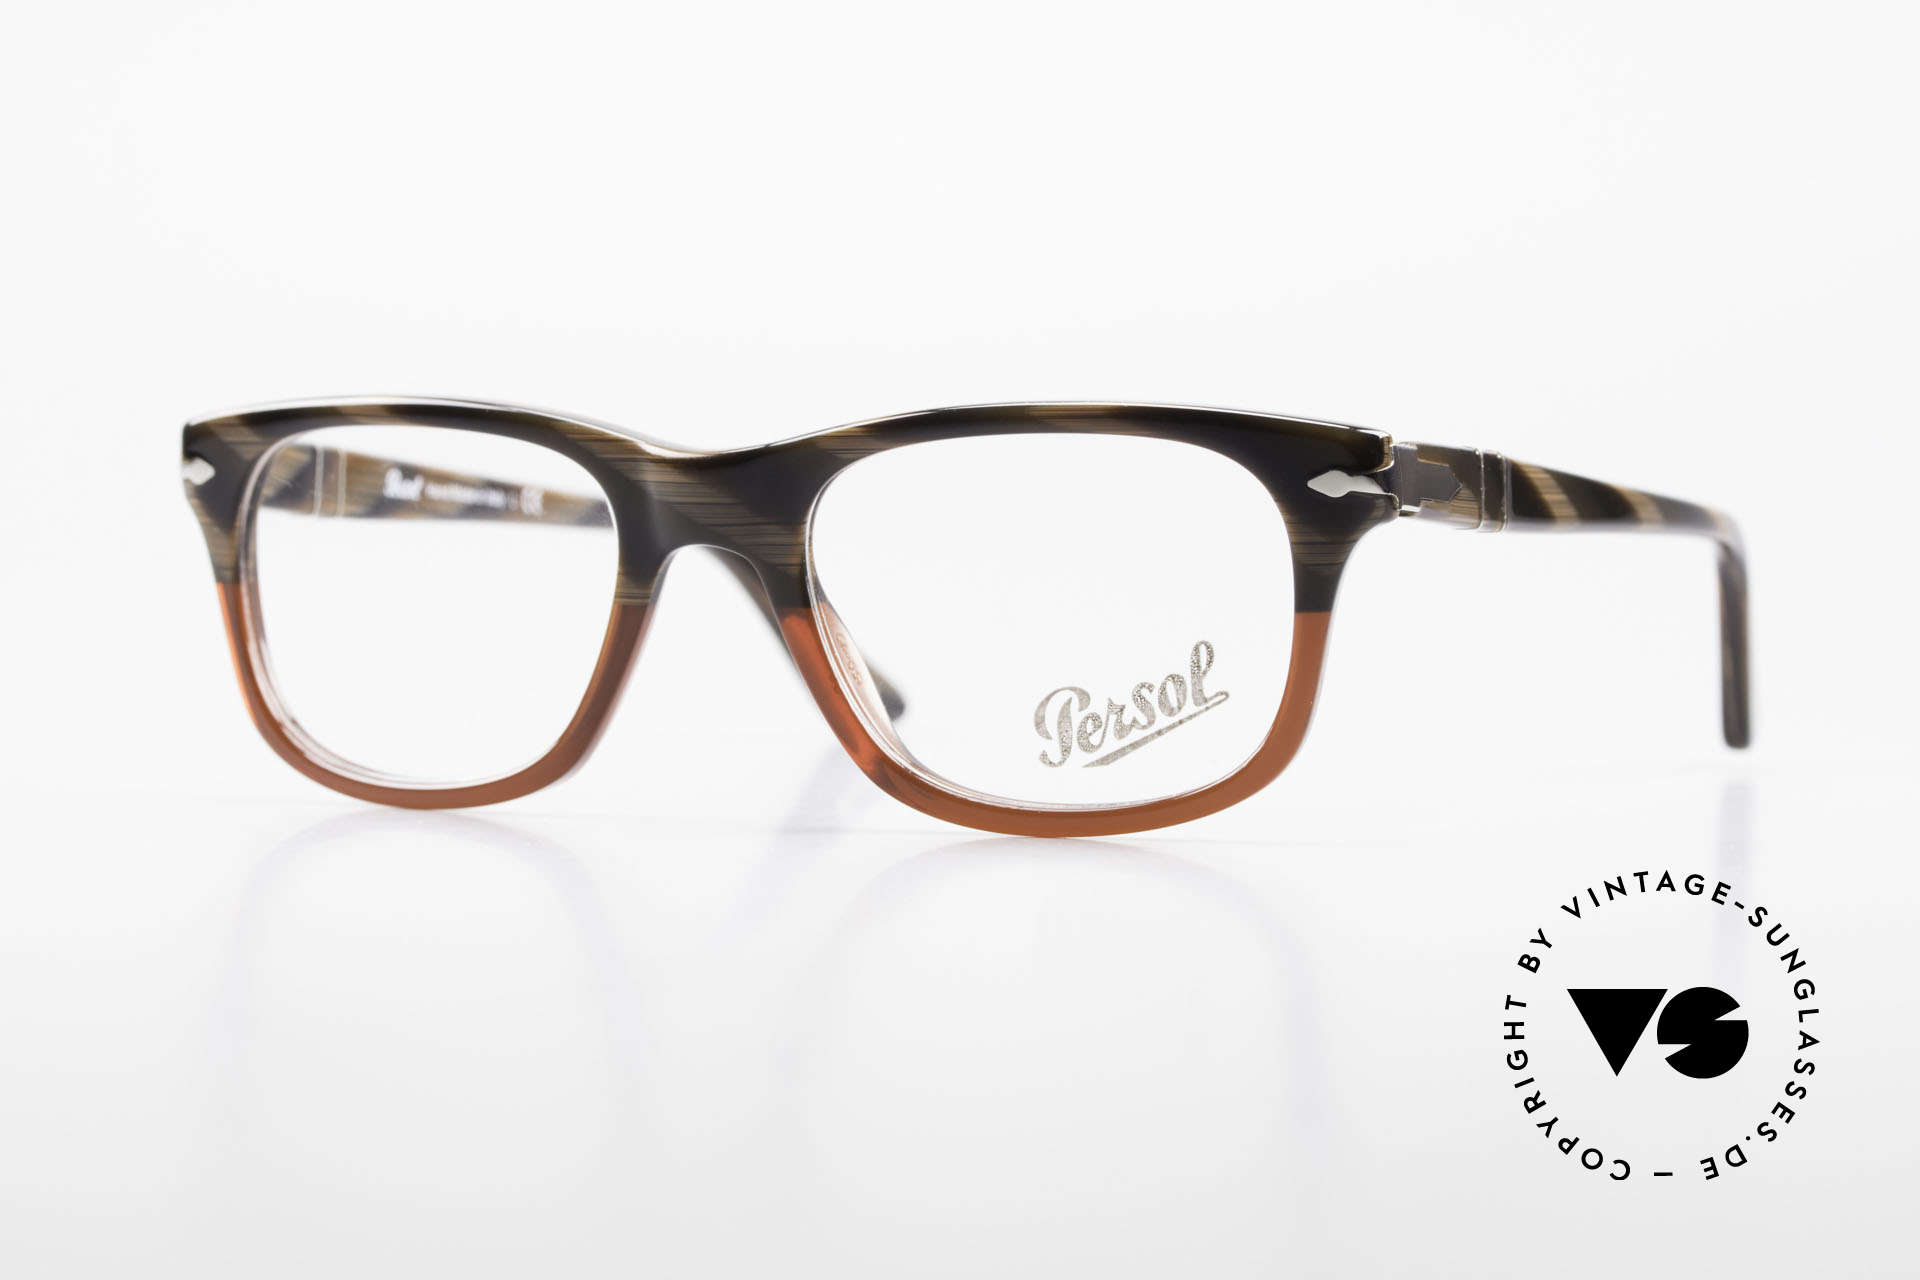 Persol 3029 Small Persol Eyeglasses Unisex, Persol glasses, mod. 3029 in SMALL size 50/19, Made for Men and Women